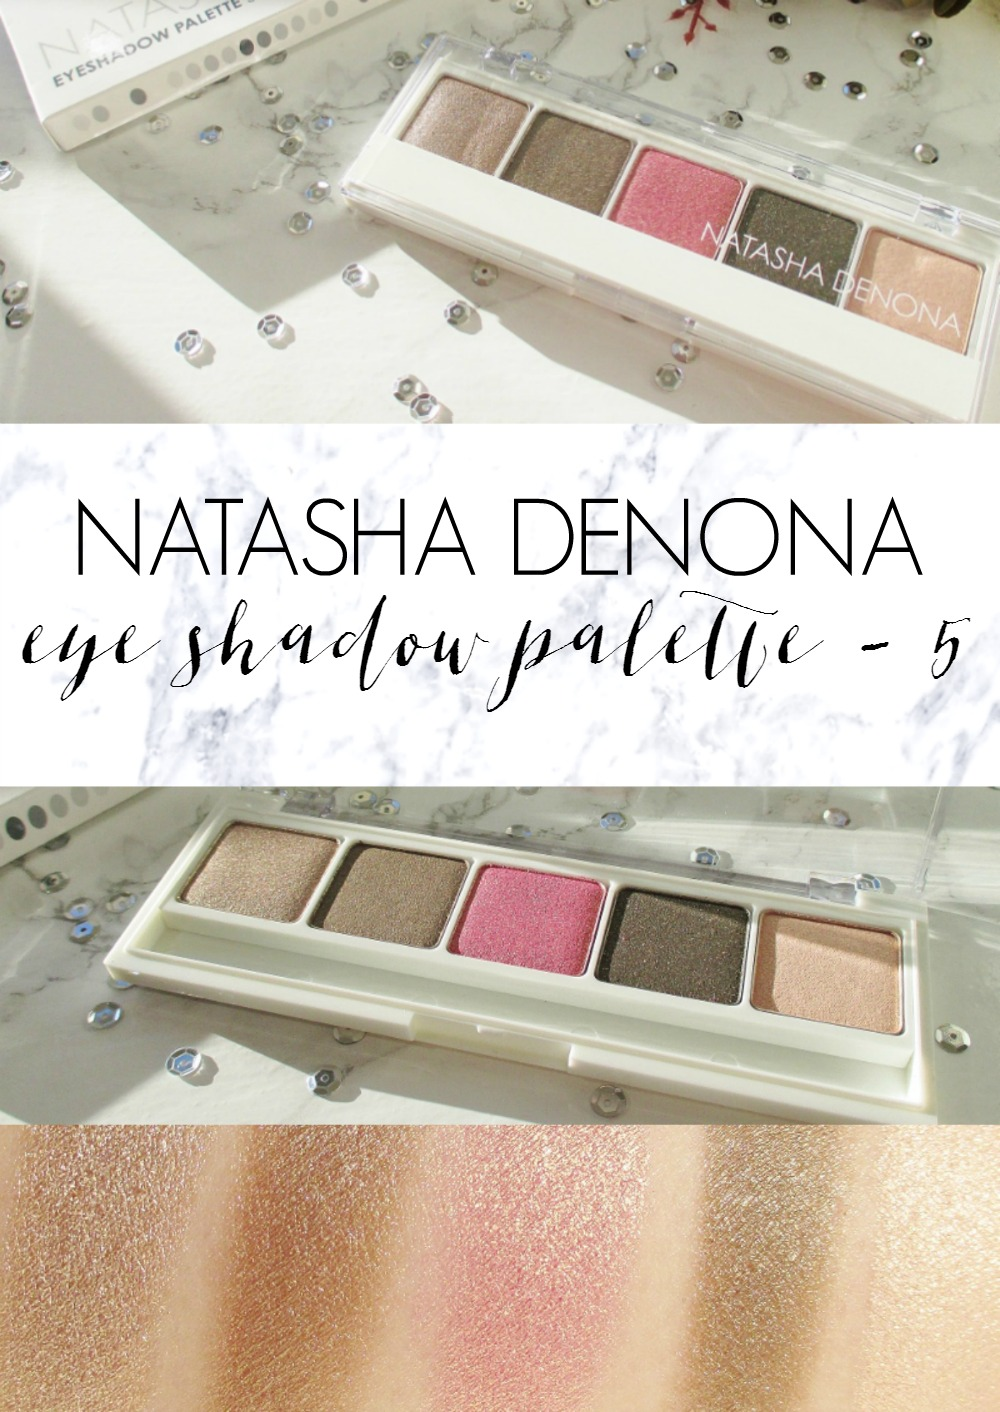 natasha-denona-eye-shadow-palette-5-